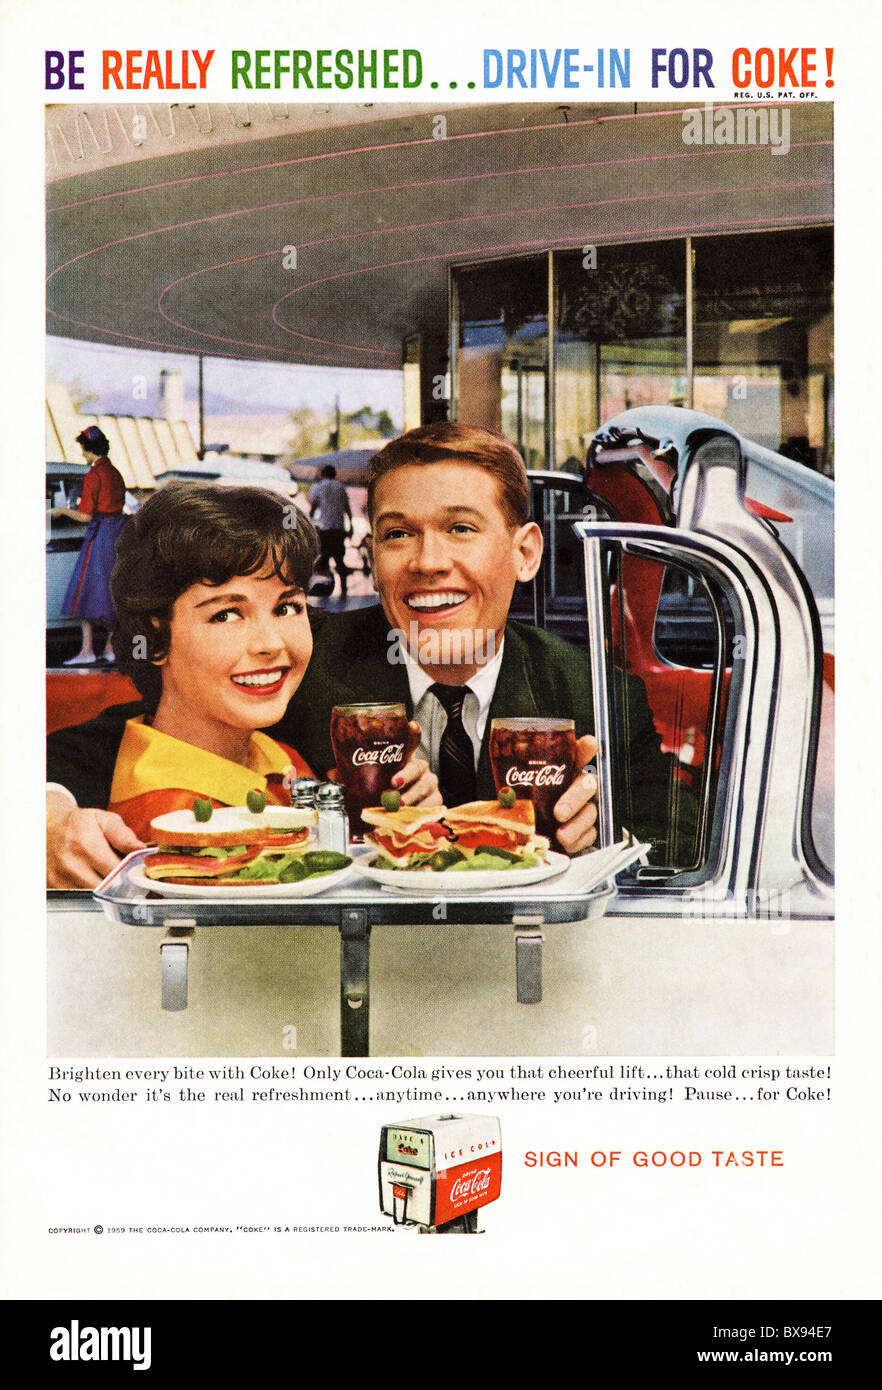 Classic Coca Cola colour advert featuring illustration of drive through scene with young couple in American magazine - Stock Image